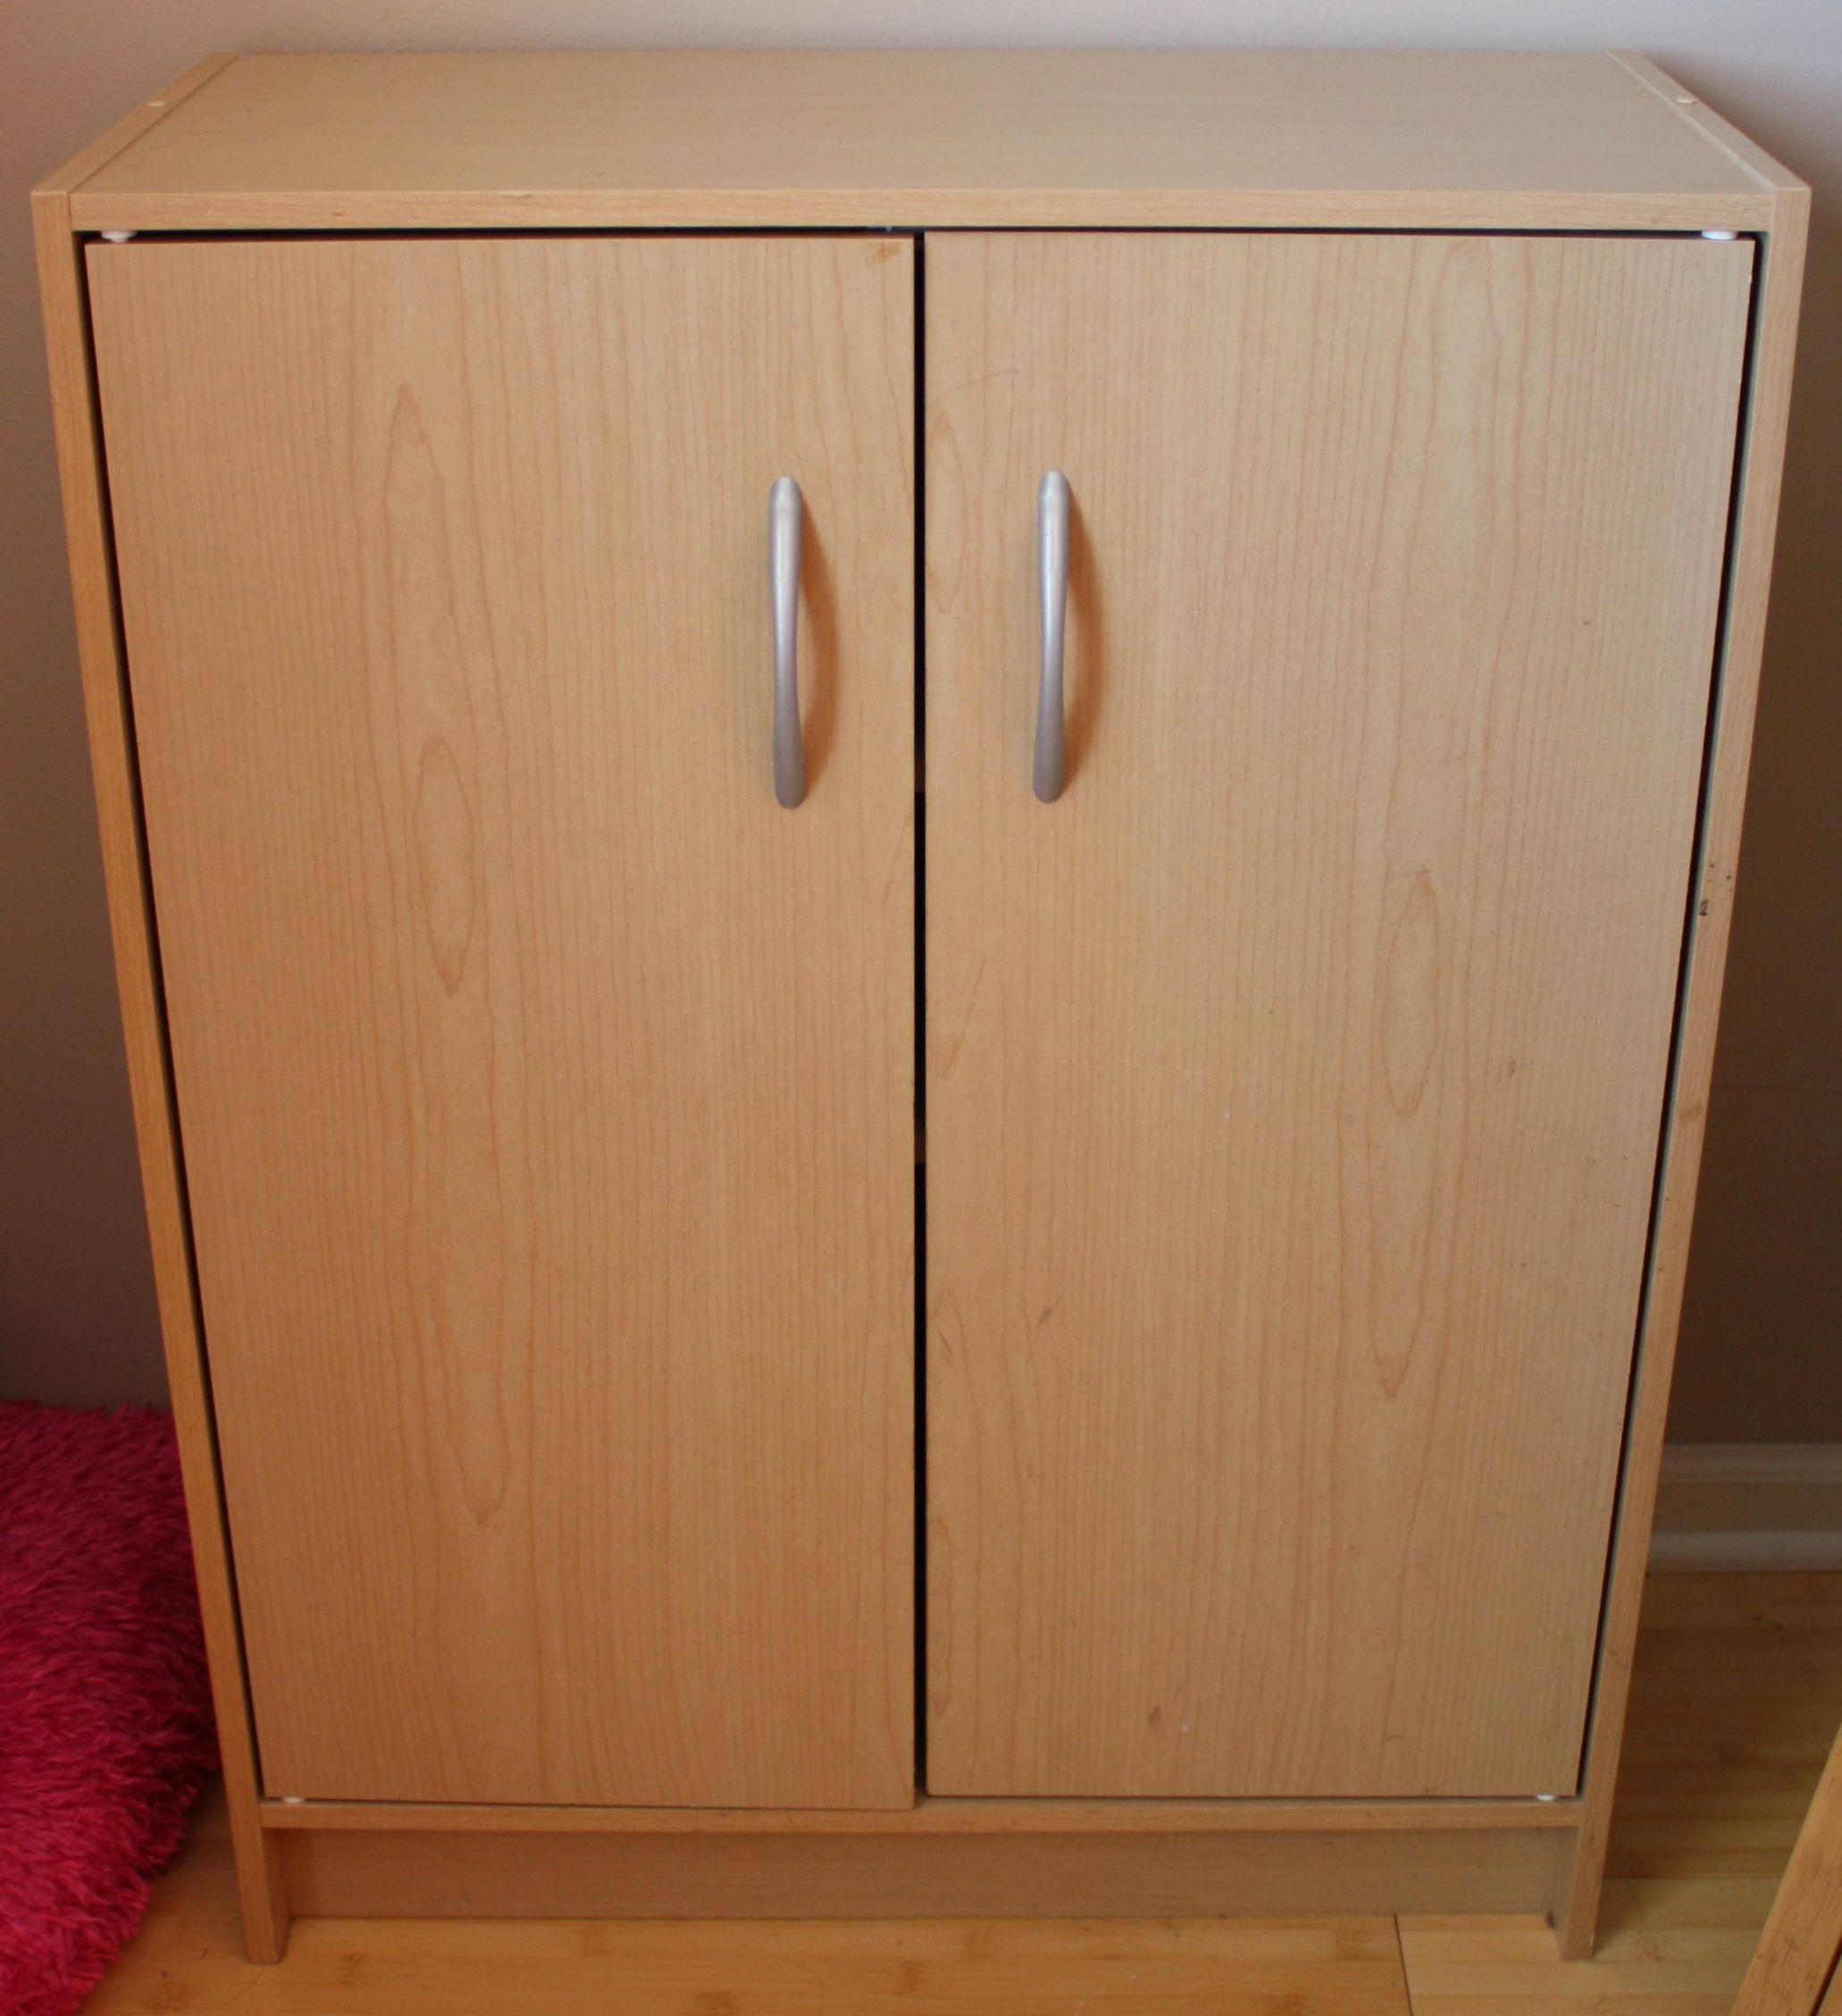 Sold Storage Cabinet In Great Condition Smoke Free Home Dimensions 31 1 2 High 12 Deep 26 Wide Www Relovedinteriors Com Storage Cabinet Storage